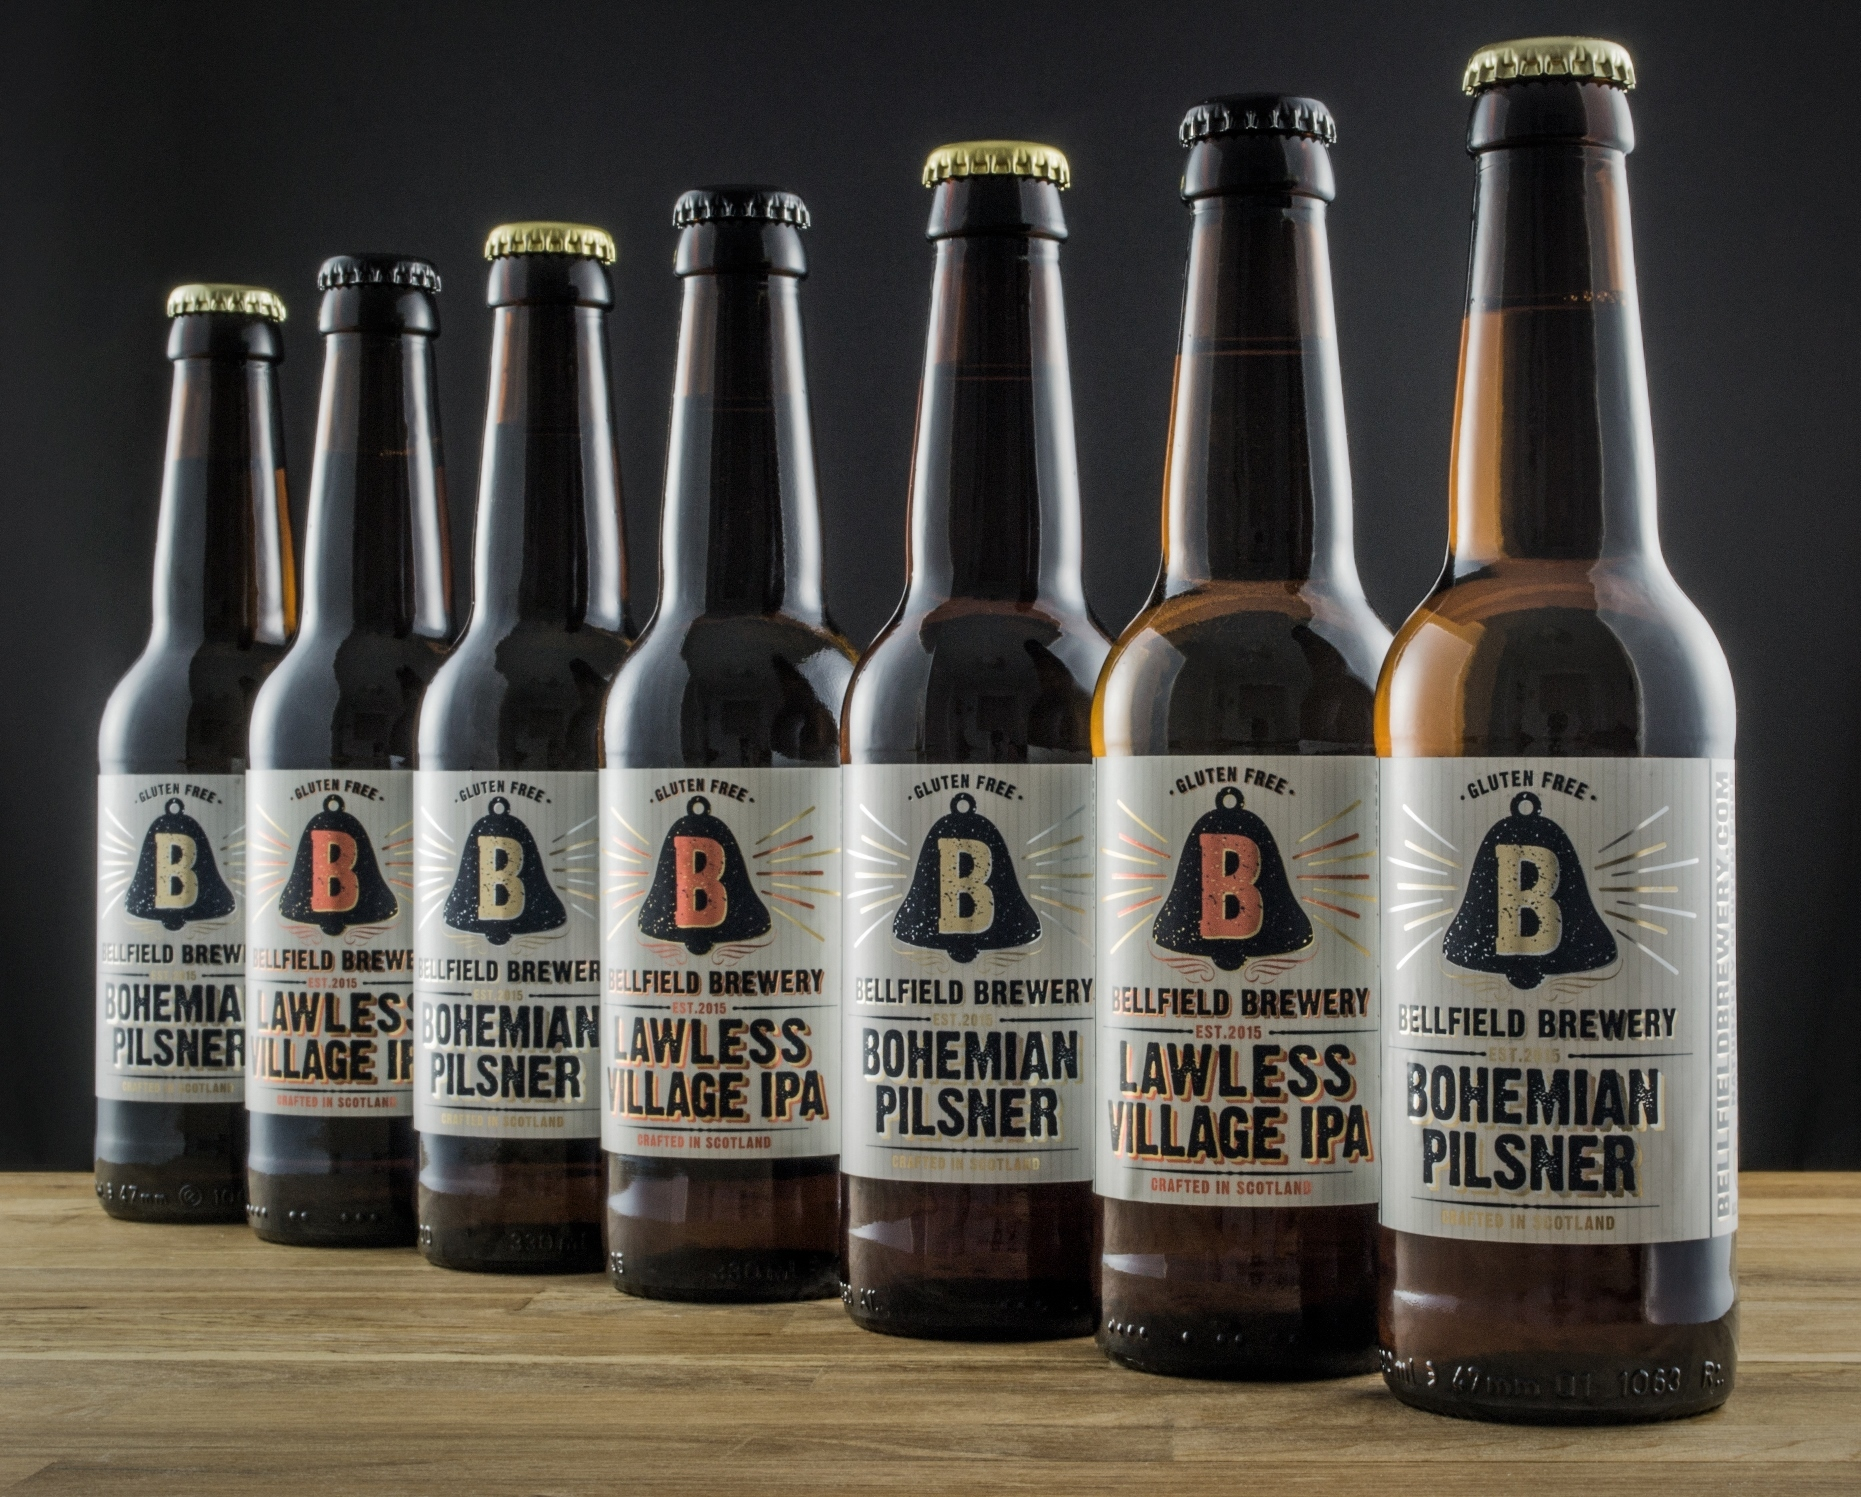 Bellfield has secured national distribution for its gluten-free beers.